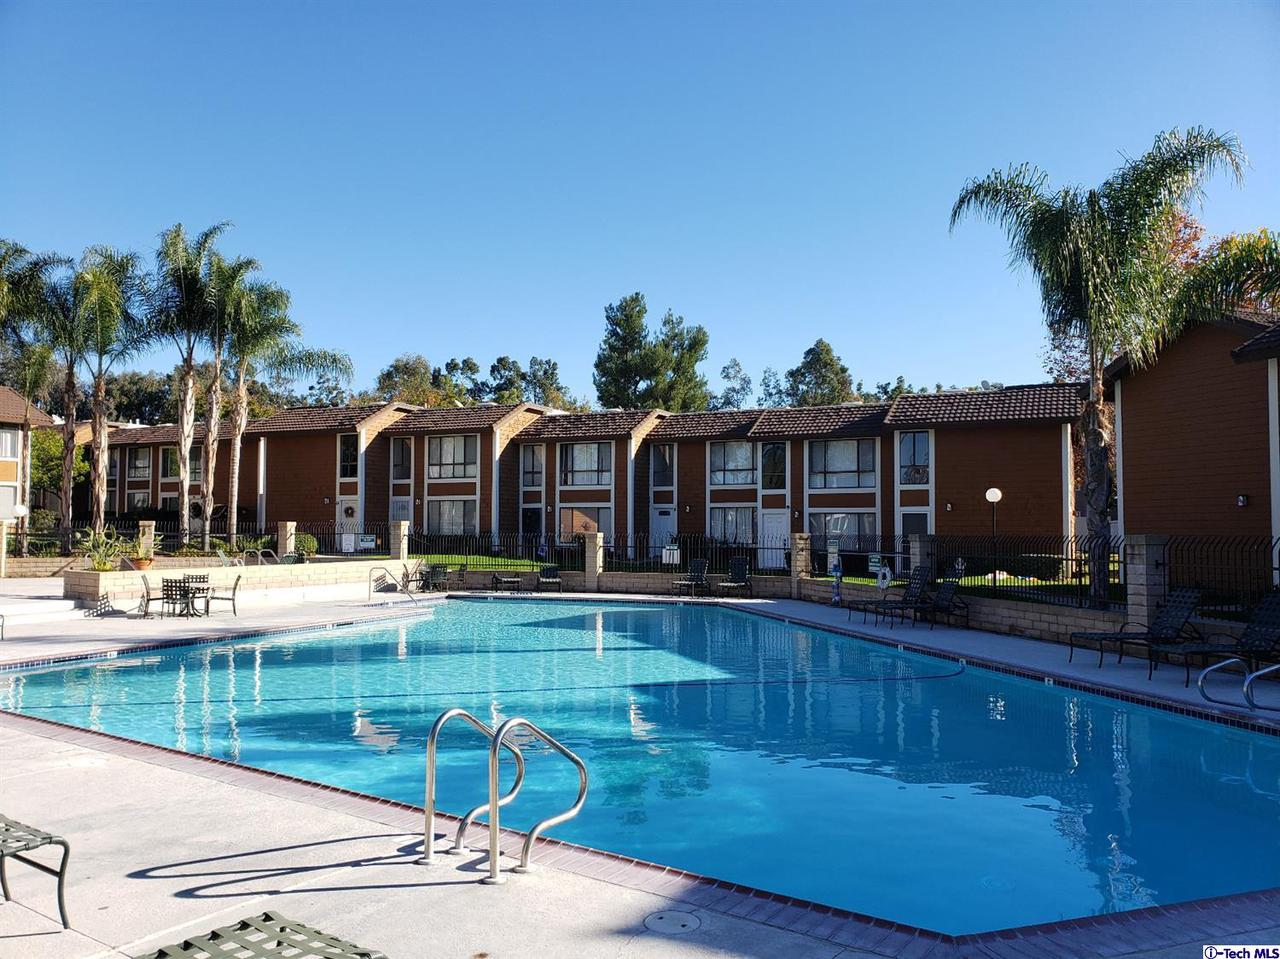 25885 TRABUCO, Lake Forest, CA 92630 - Sparkling association pool and deck area.